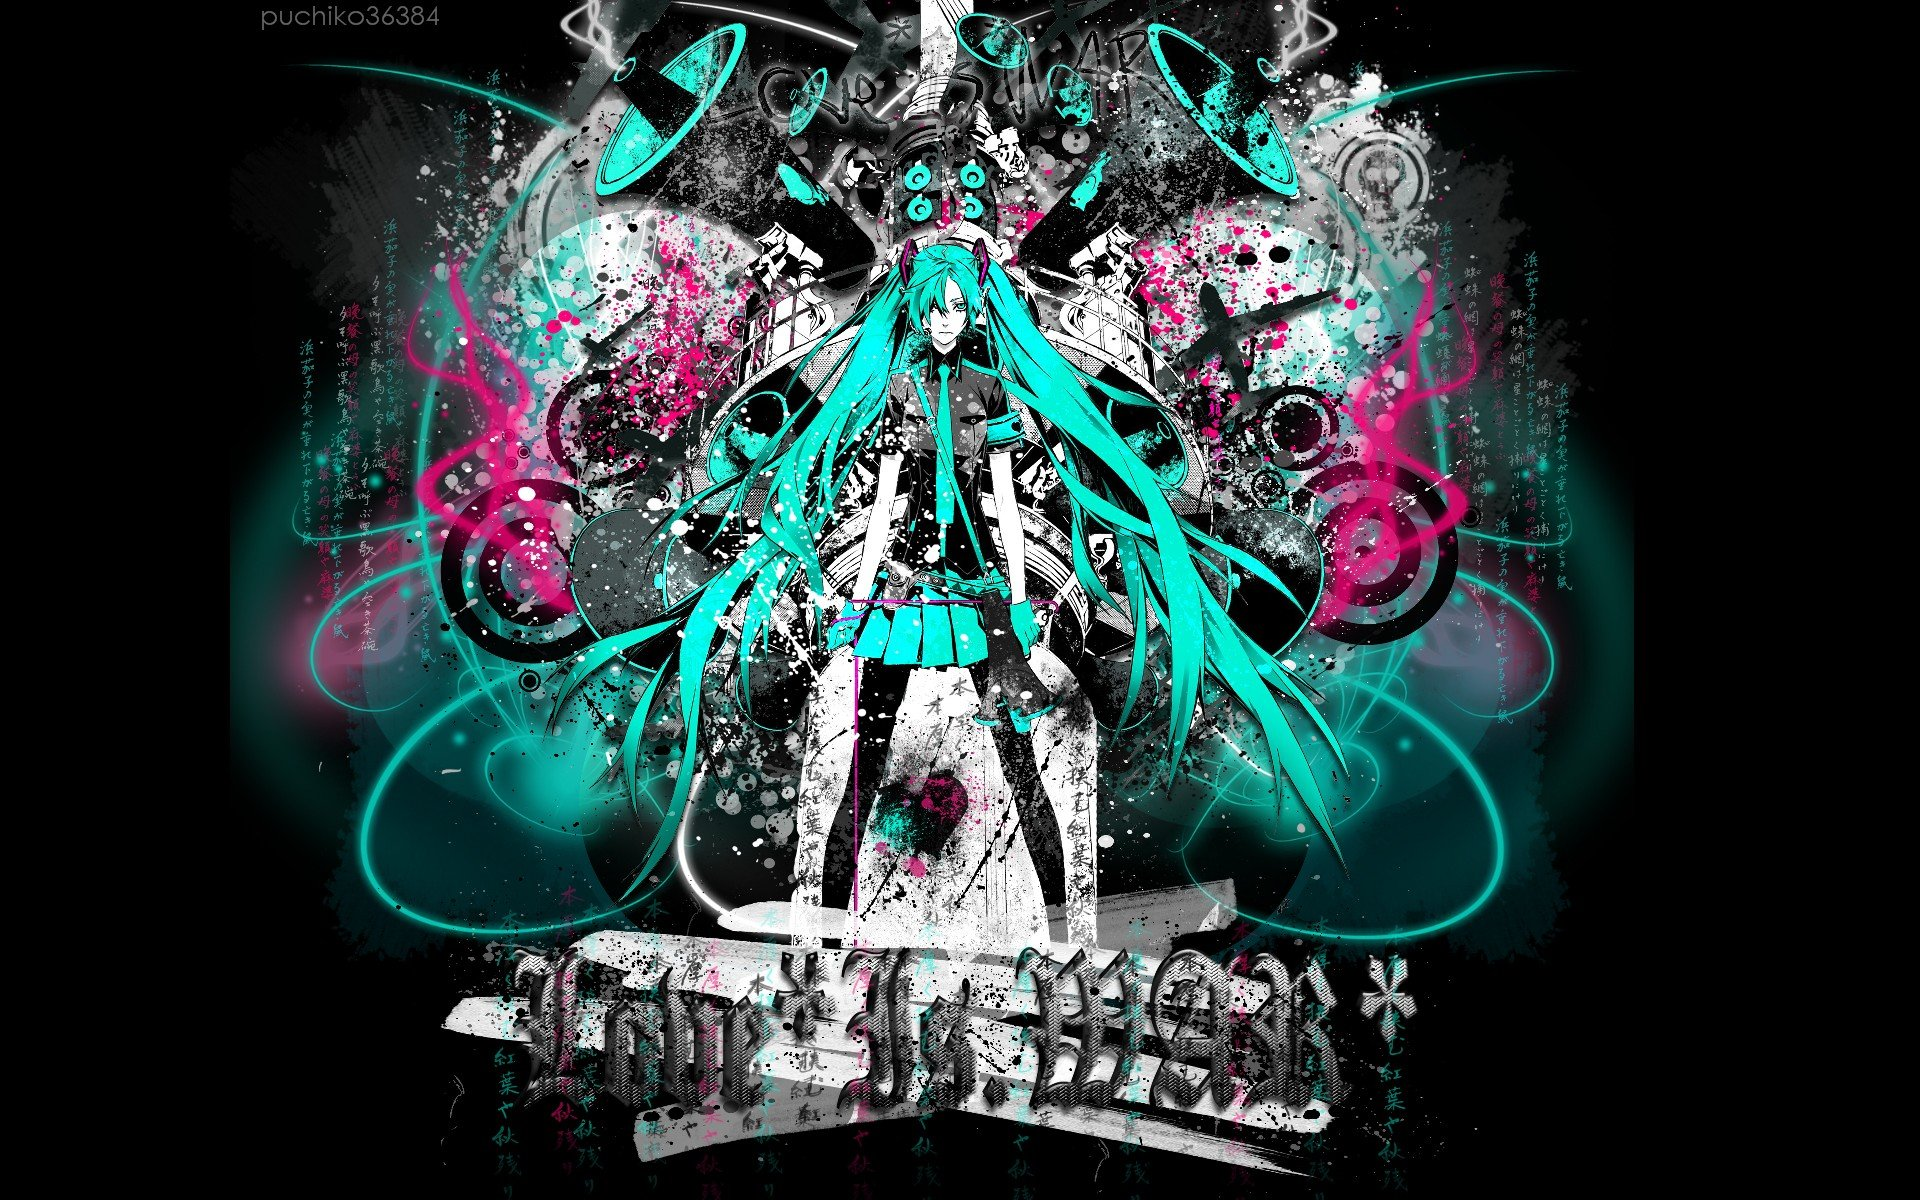 Download hd 1920x1200 Vocaloid computer wallpaper ID:805 for free